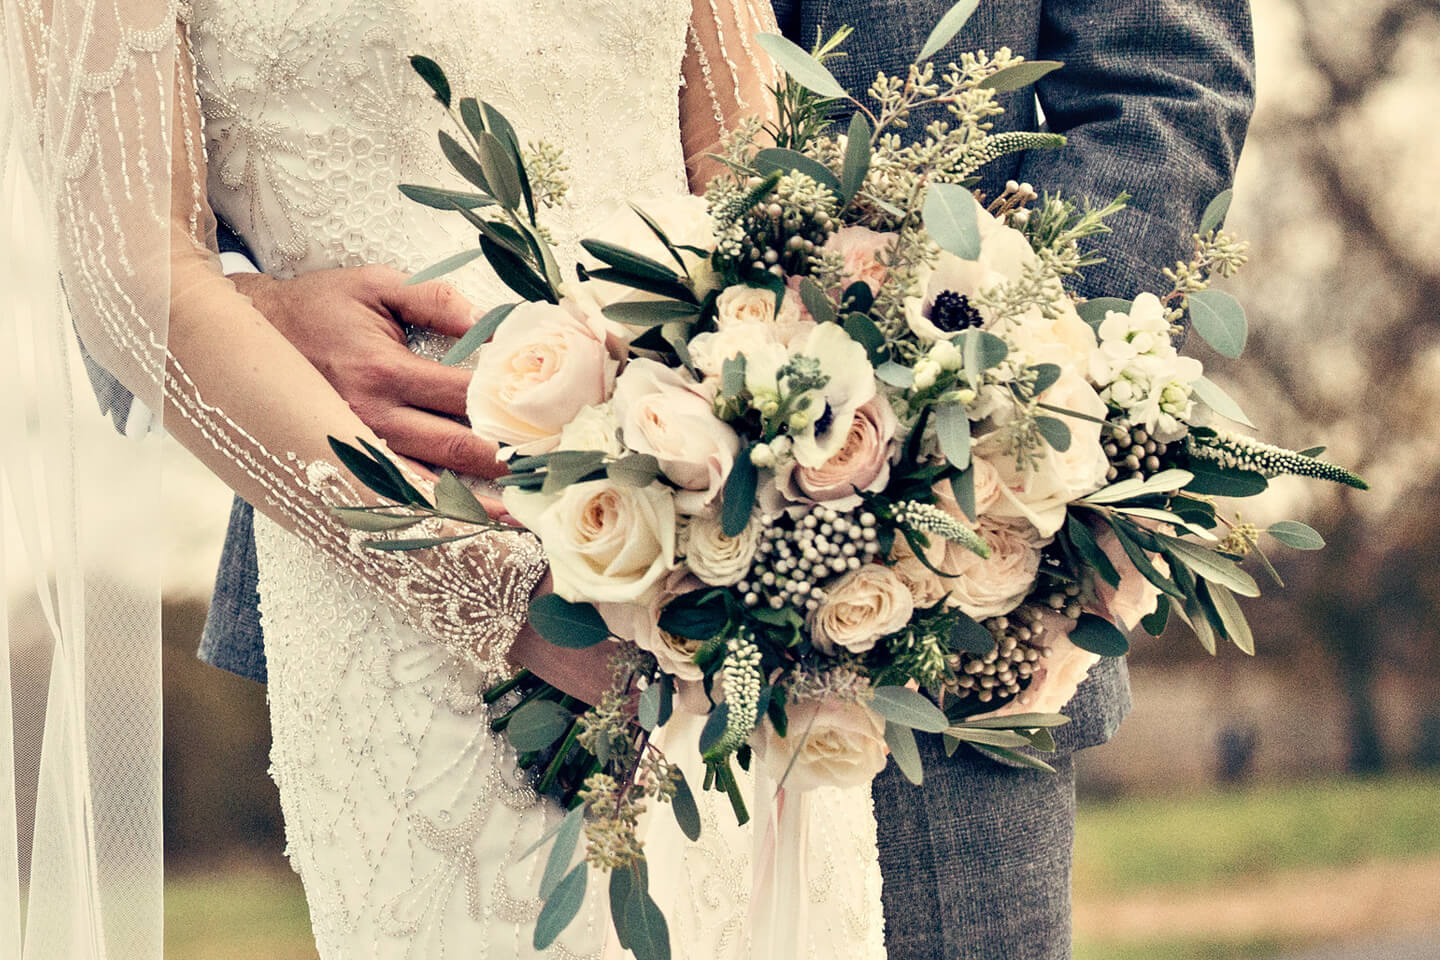 The bride holds her stunning winter wedding bouquet – a mix of blush pink and white roses with foliage